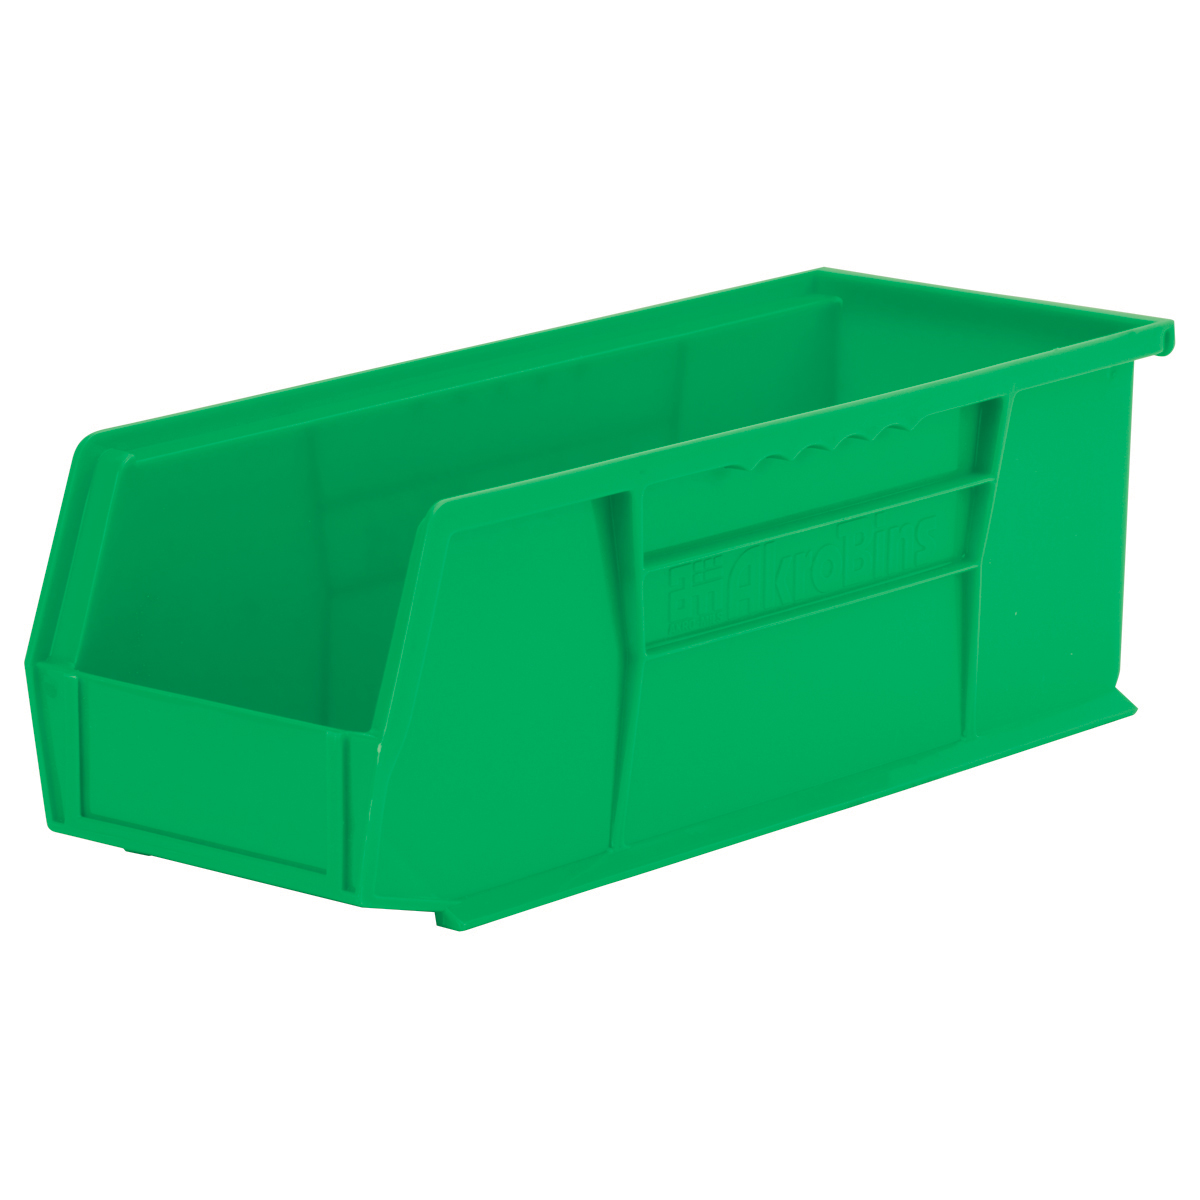 AkroBin 14-3/4 x 5-1/2 x 5, Green (30234GREEN).  This item sold in carton quantities of 12.